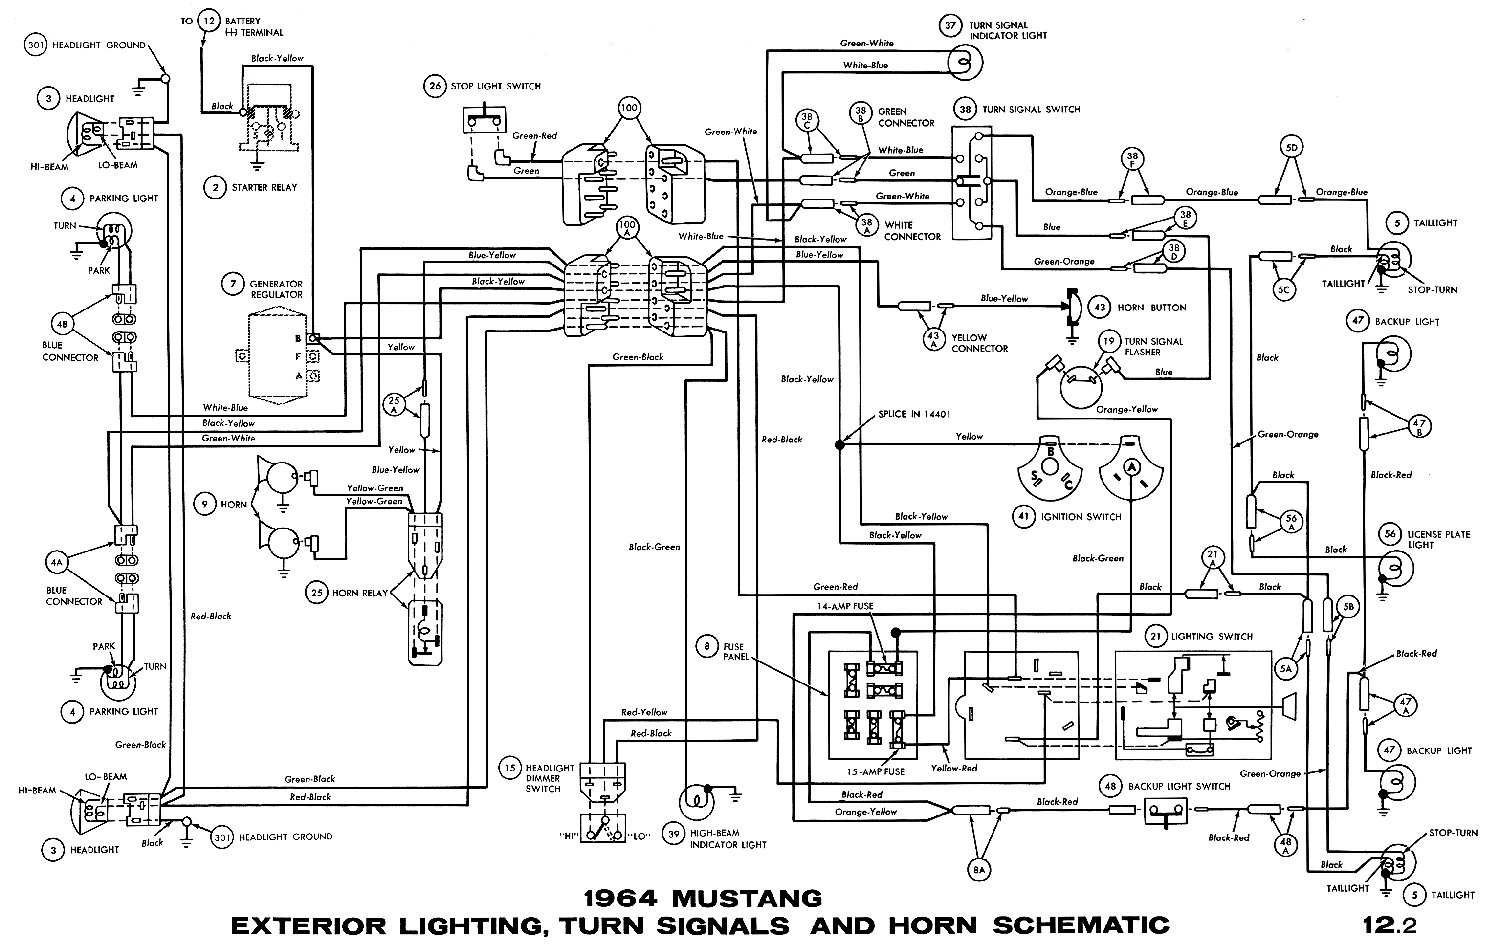 hight resolution of 1964 mustang fuse diagram wiring diagram load 1964 mustang fuse box diagram 1964 mustang fuse diagram